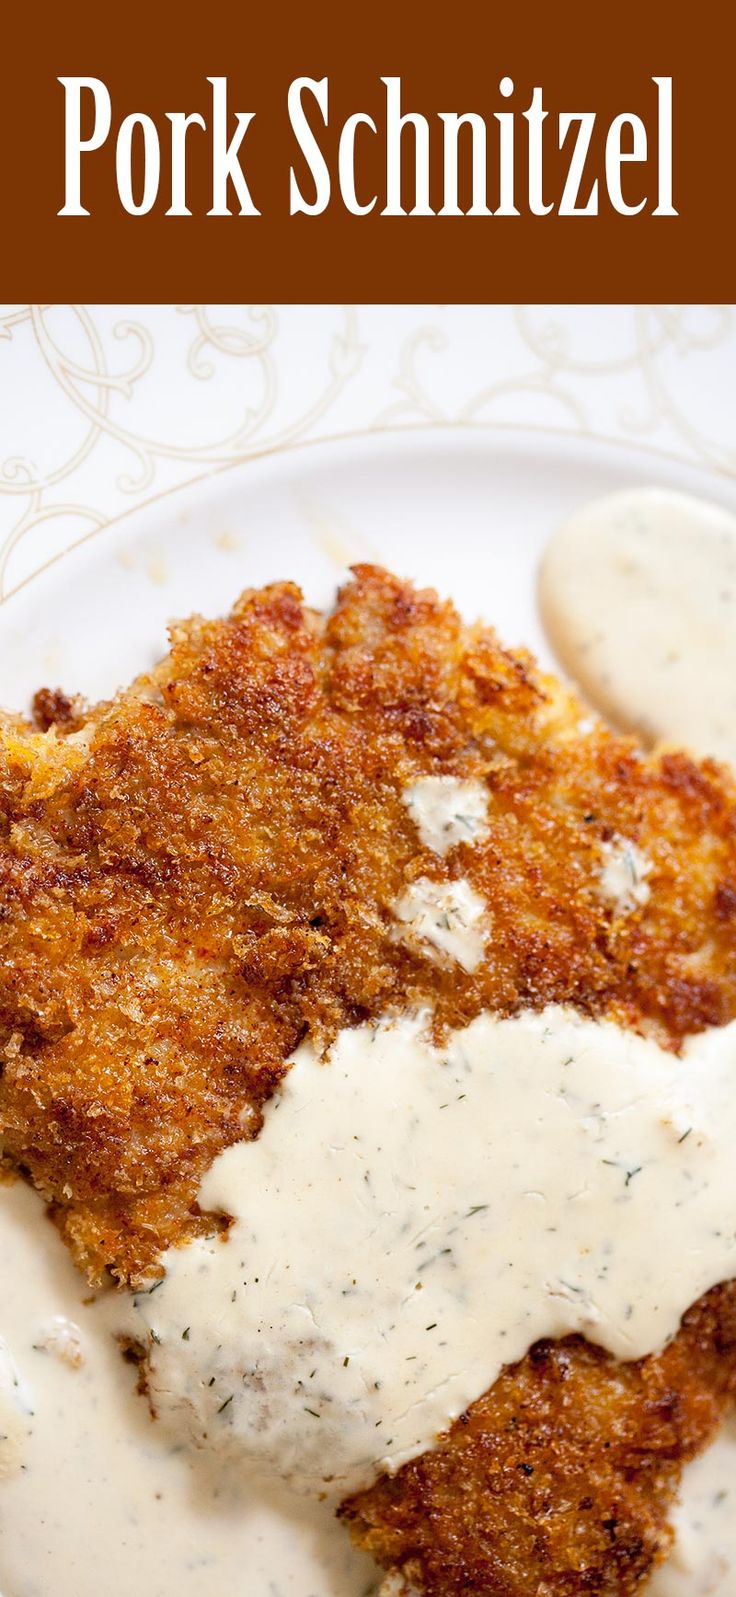 Pork Schnitzel! 1-Pot, 30 Min, Thinly pounded breaded pork cutlets, browned and served with a creamy dill sauce.